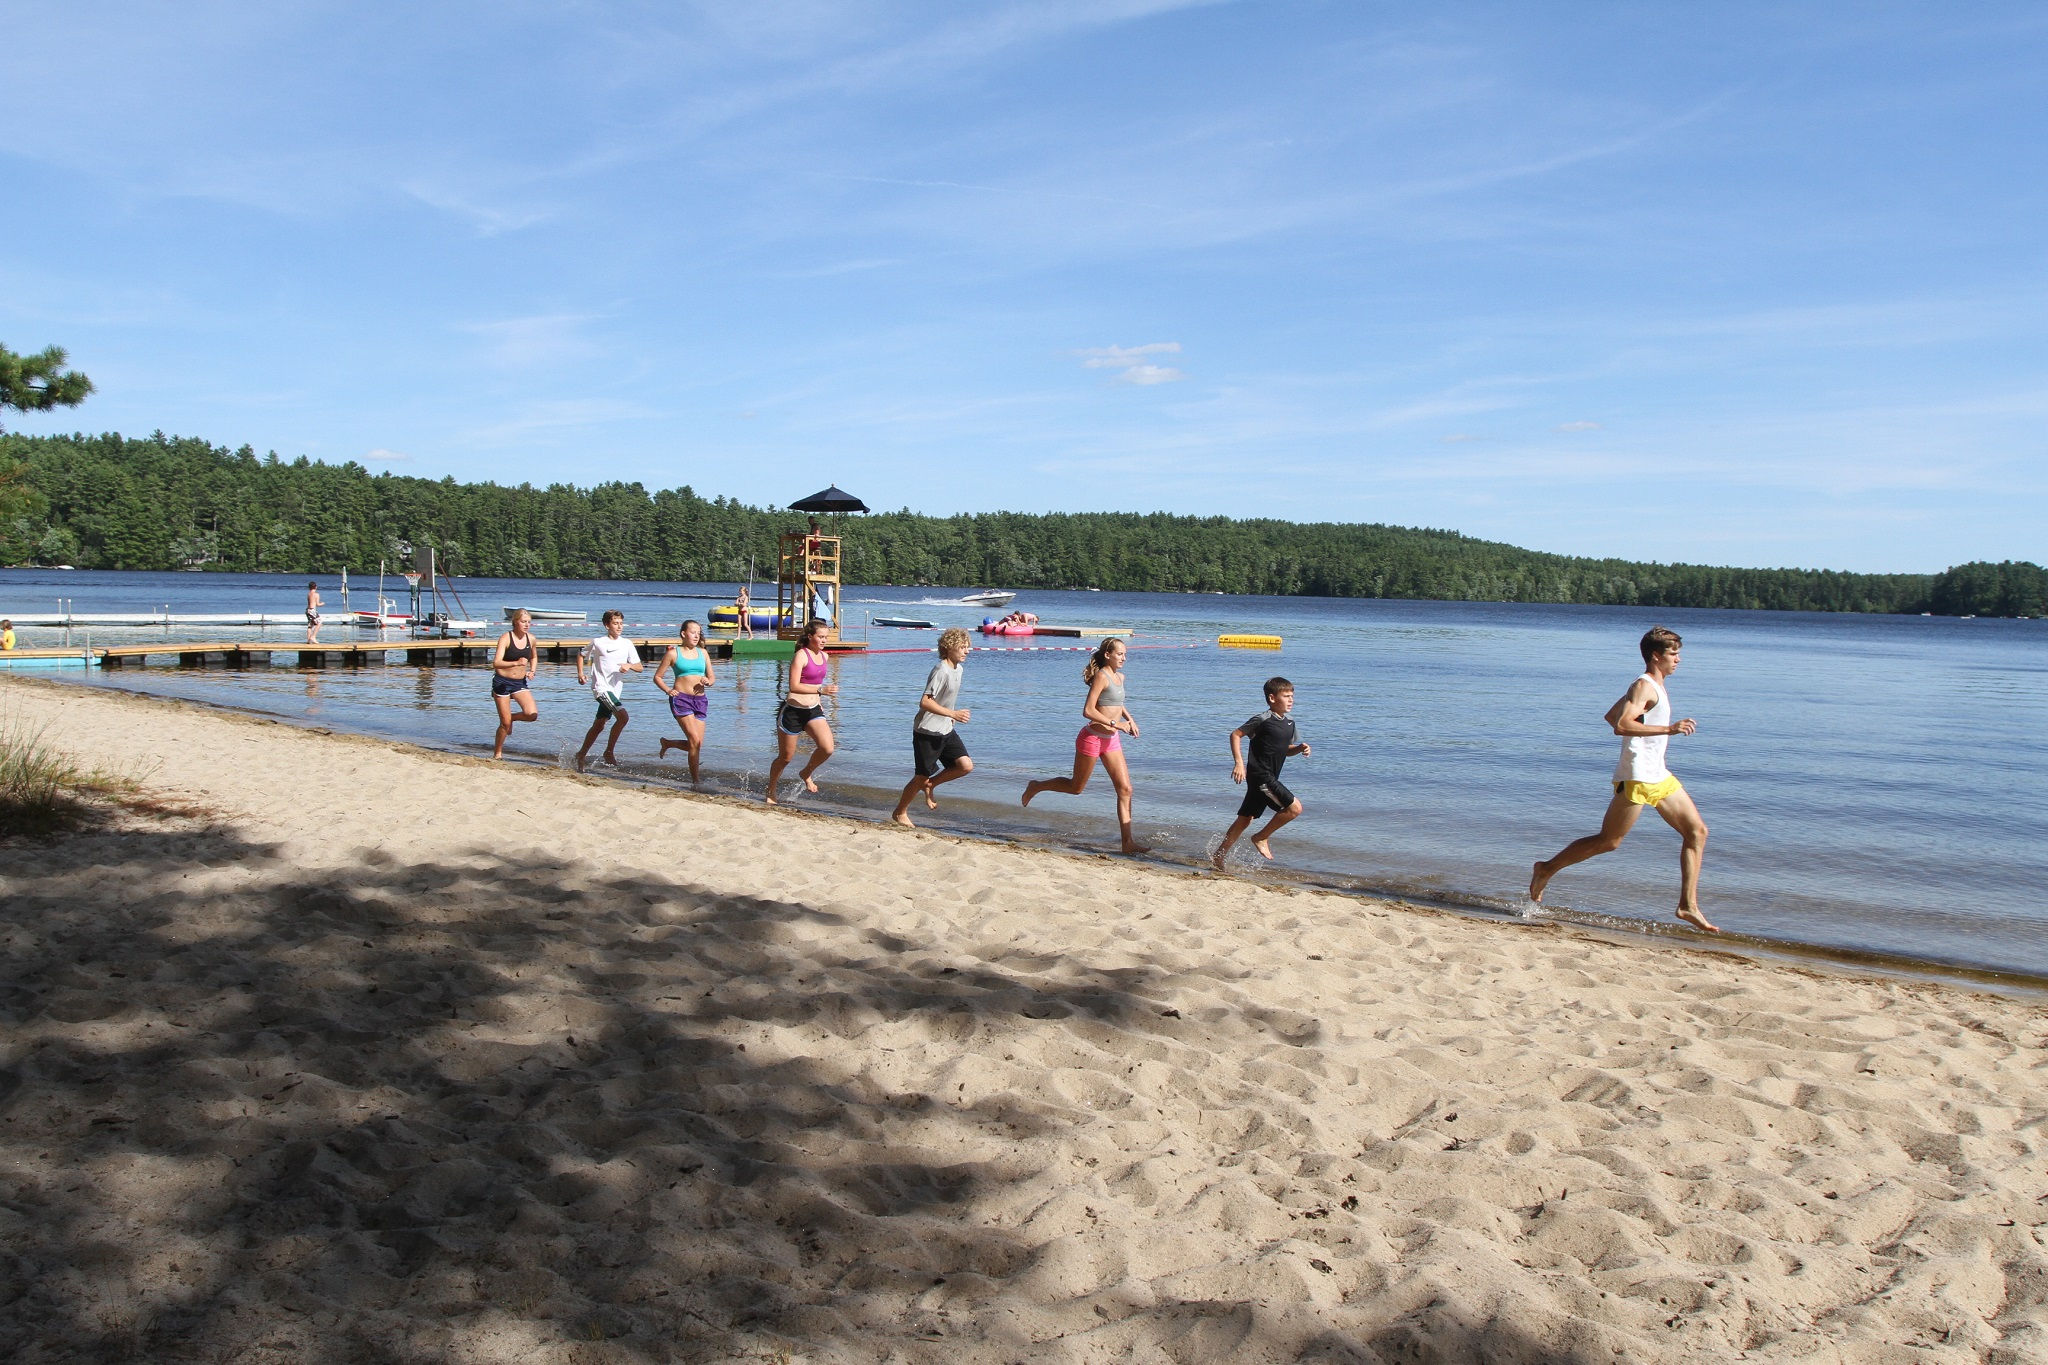 Campers running along the water on the beach